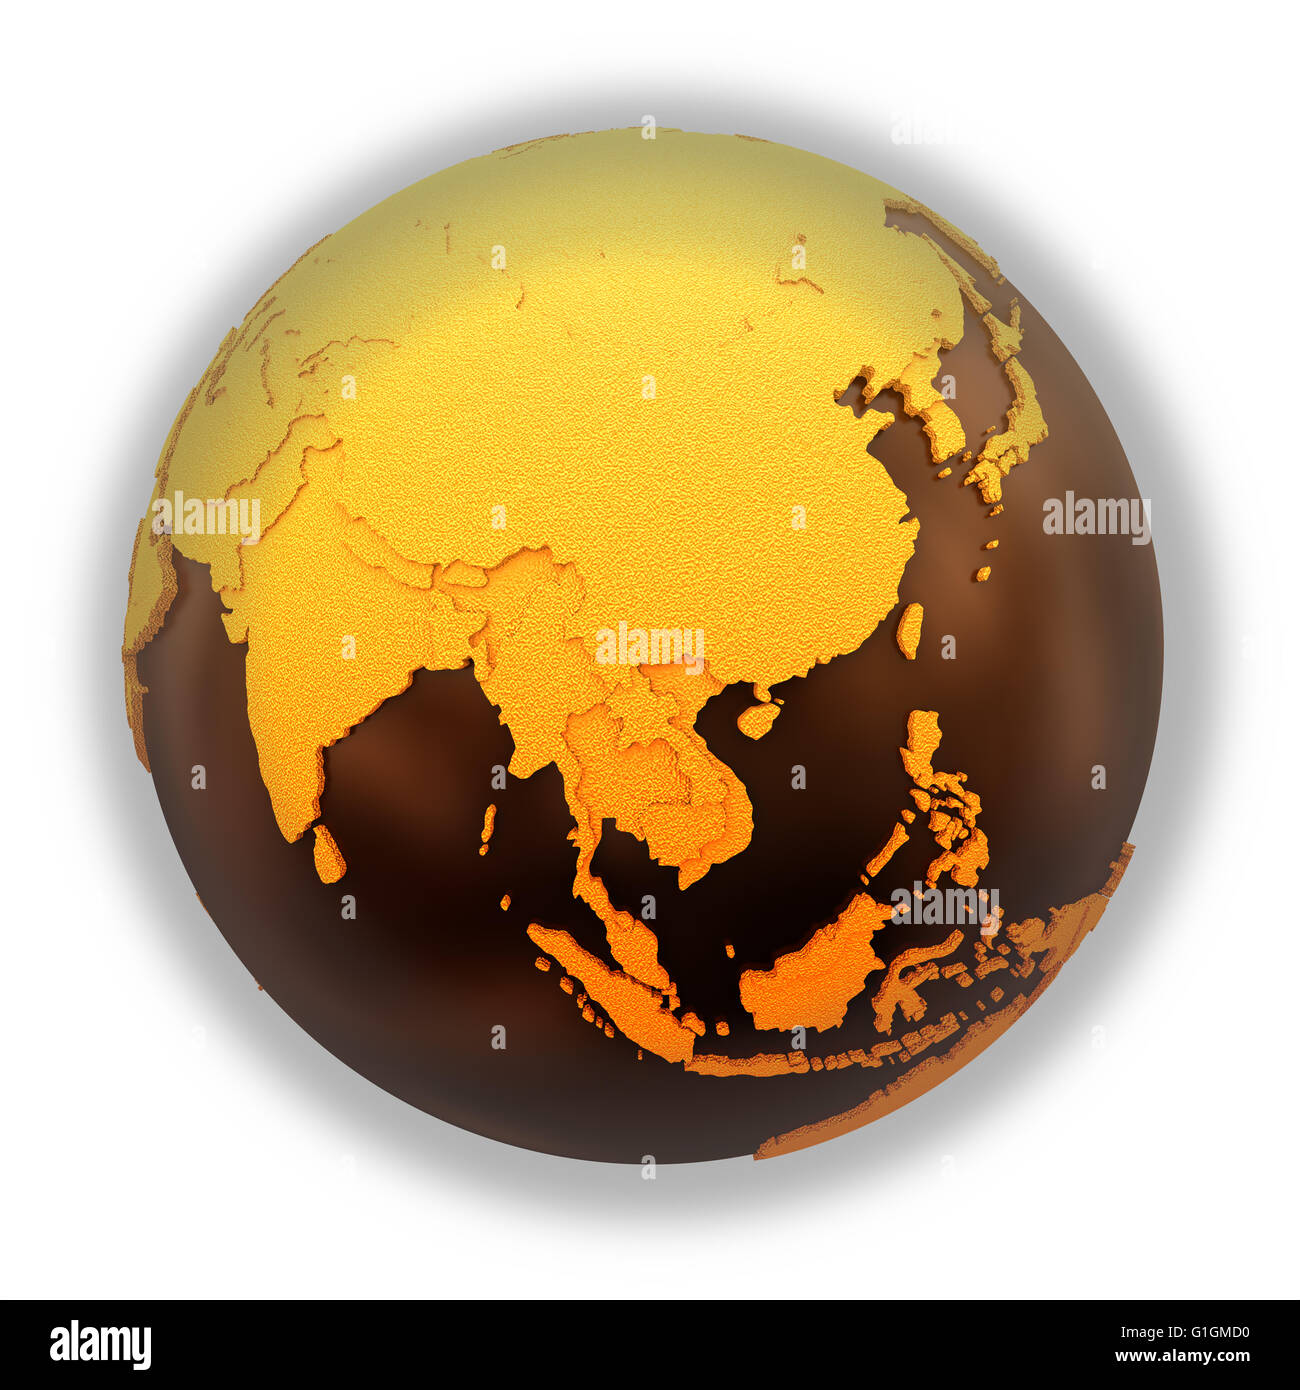 Southeast Asia on chocolate model of planet Earth. Sweet crusty ...